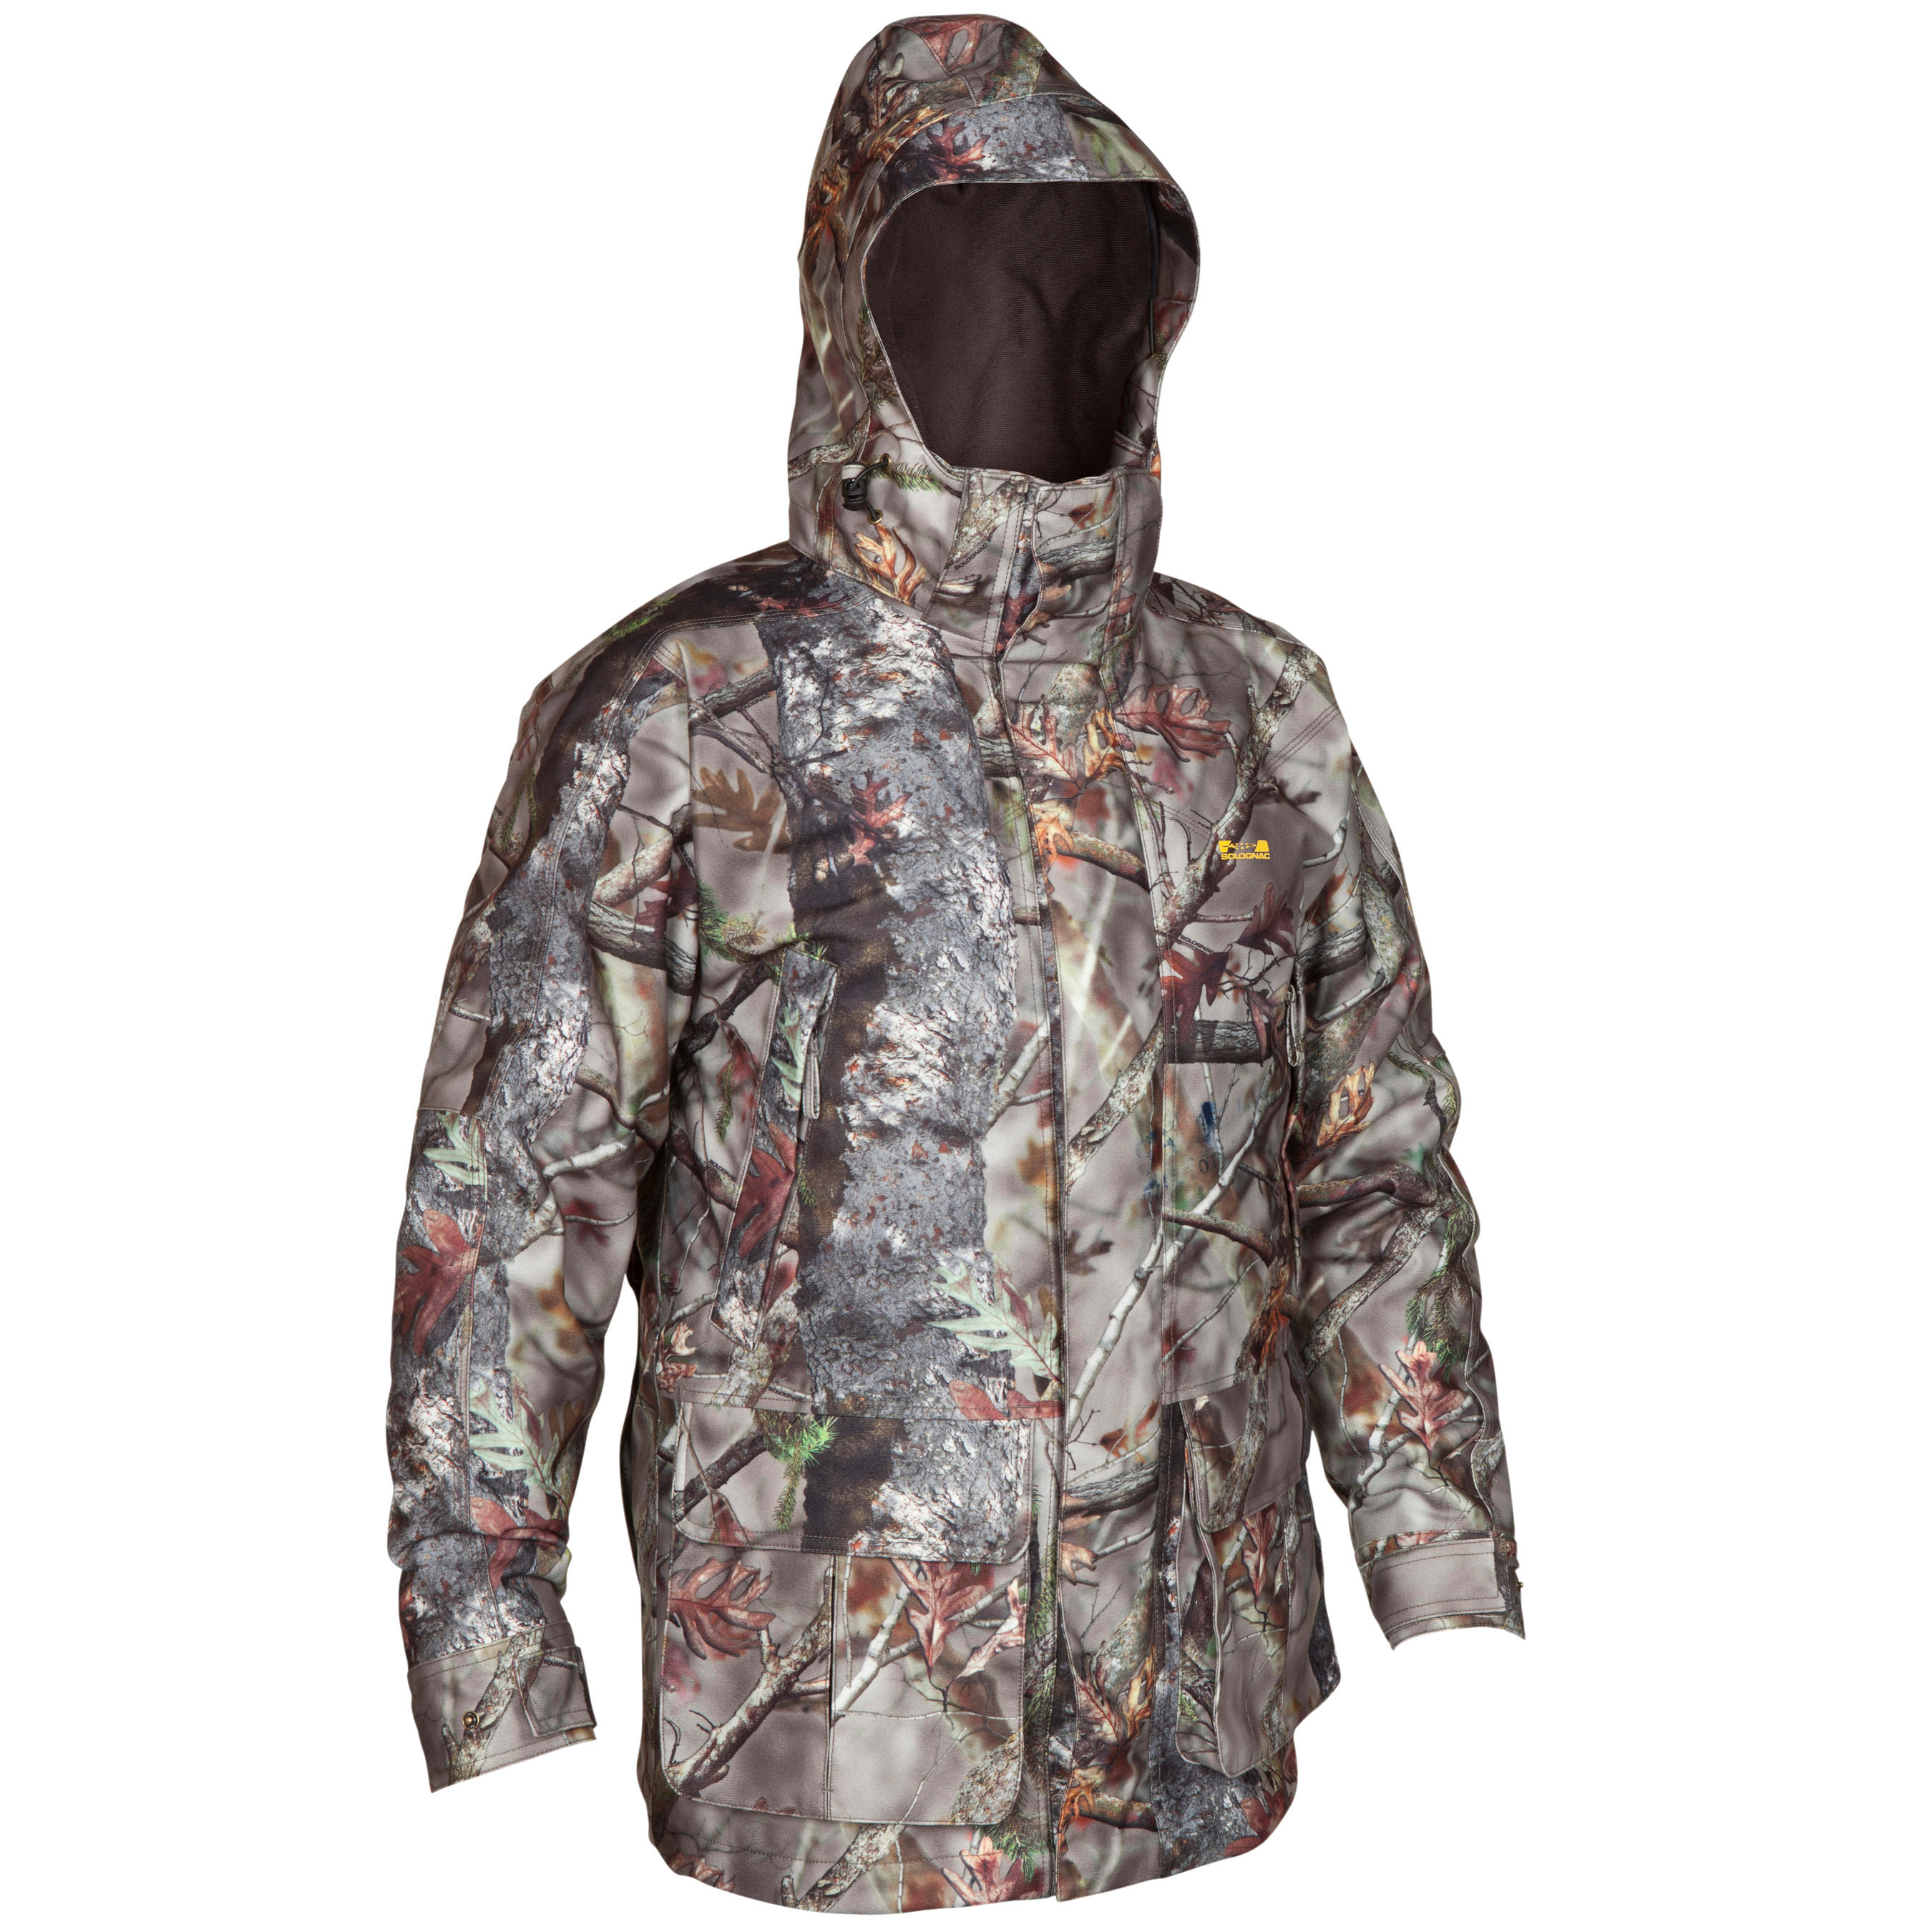 POSIKAM 300 WATERPROOF HUNTING PARKA - CAMOUFLAGE BROWN